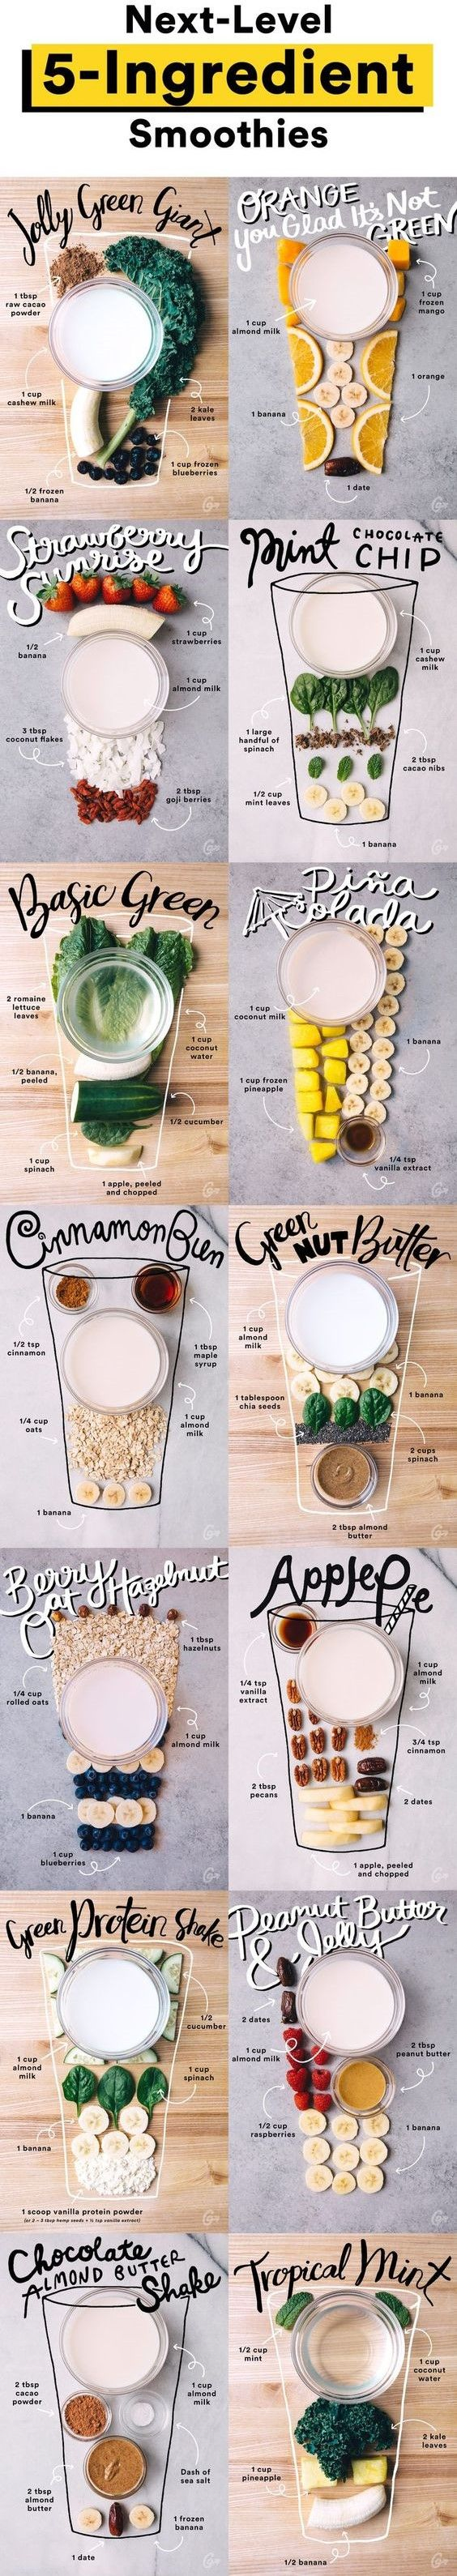 Smoothies are manufactured by blending together whole foods like juices, veggies and grains. So, it is quite a healthy stuff to fill in the gaps between two meals-Smoothies Recipes  #EatClean #FitFood #Recipes #CleanEating #Detox #Health #Fitness #Nutrition #DIY #Hack